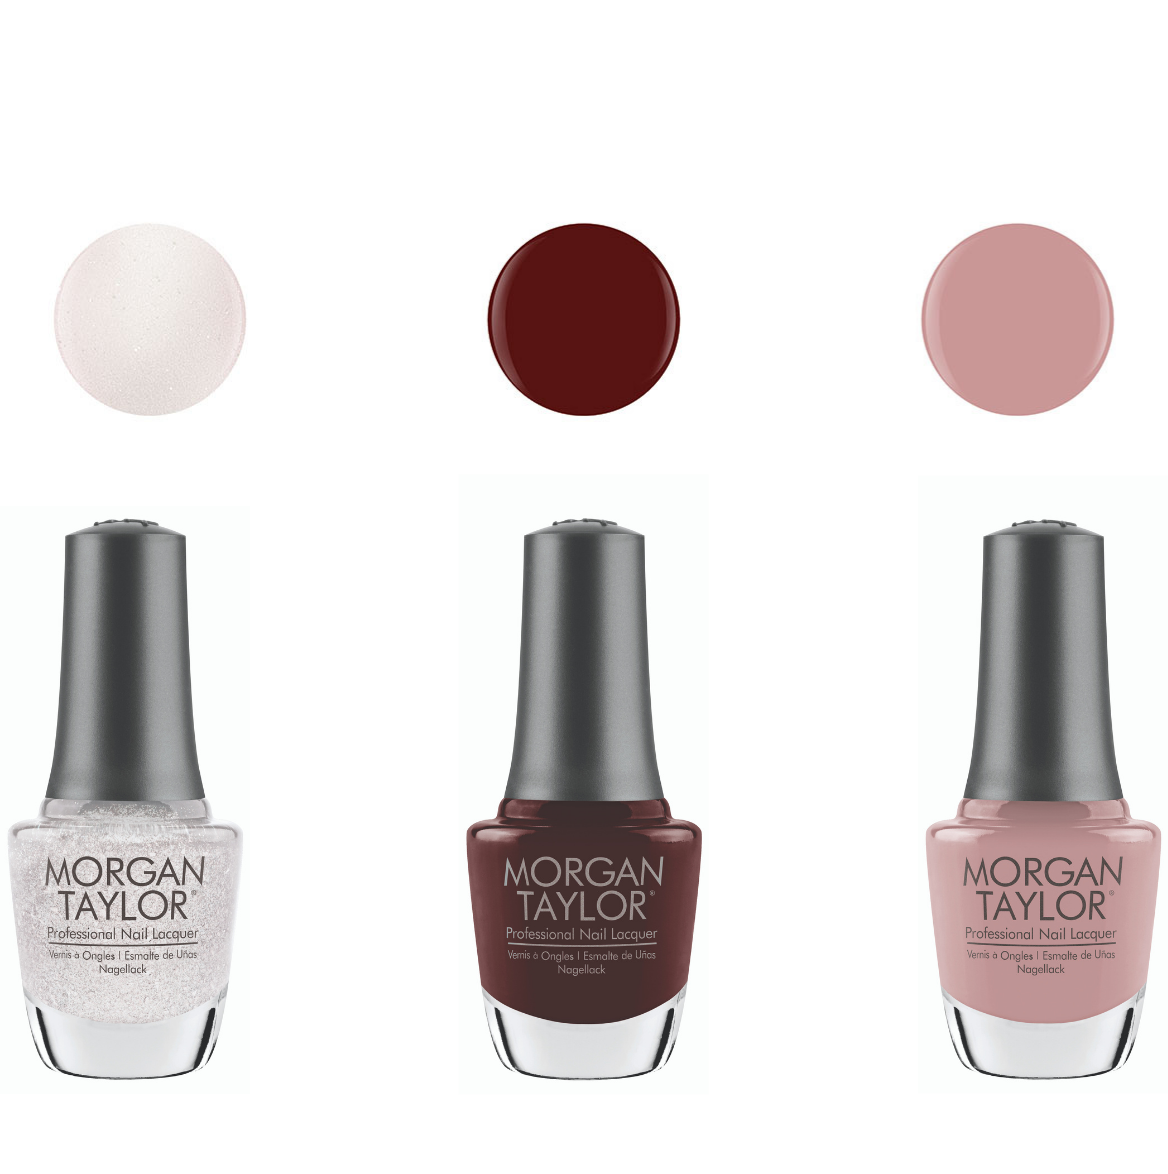 Nova coleção Morgan Taylor and Gelish: Out in the open